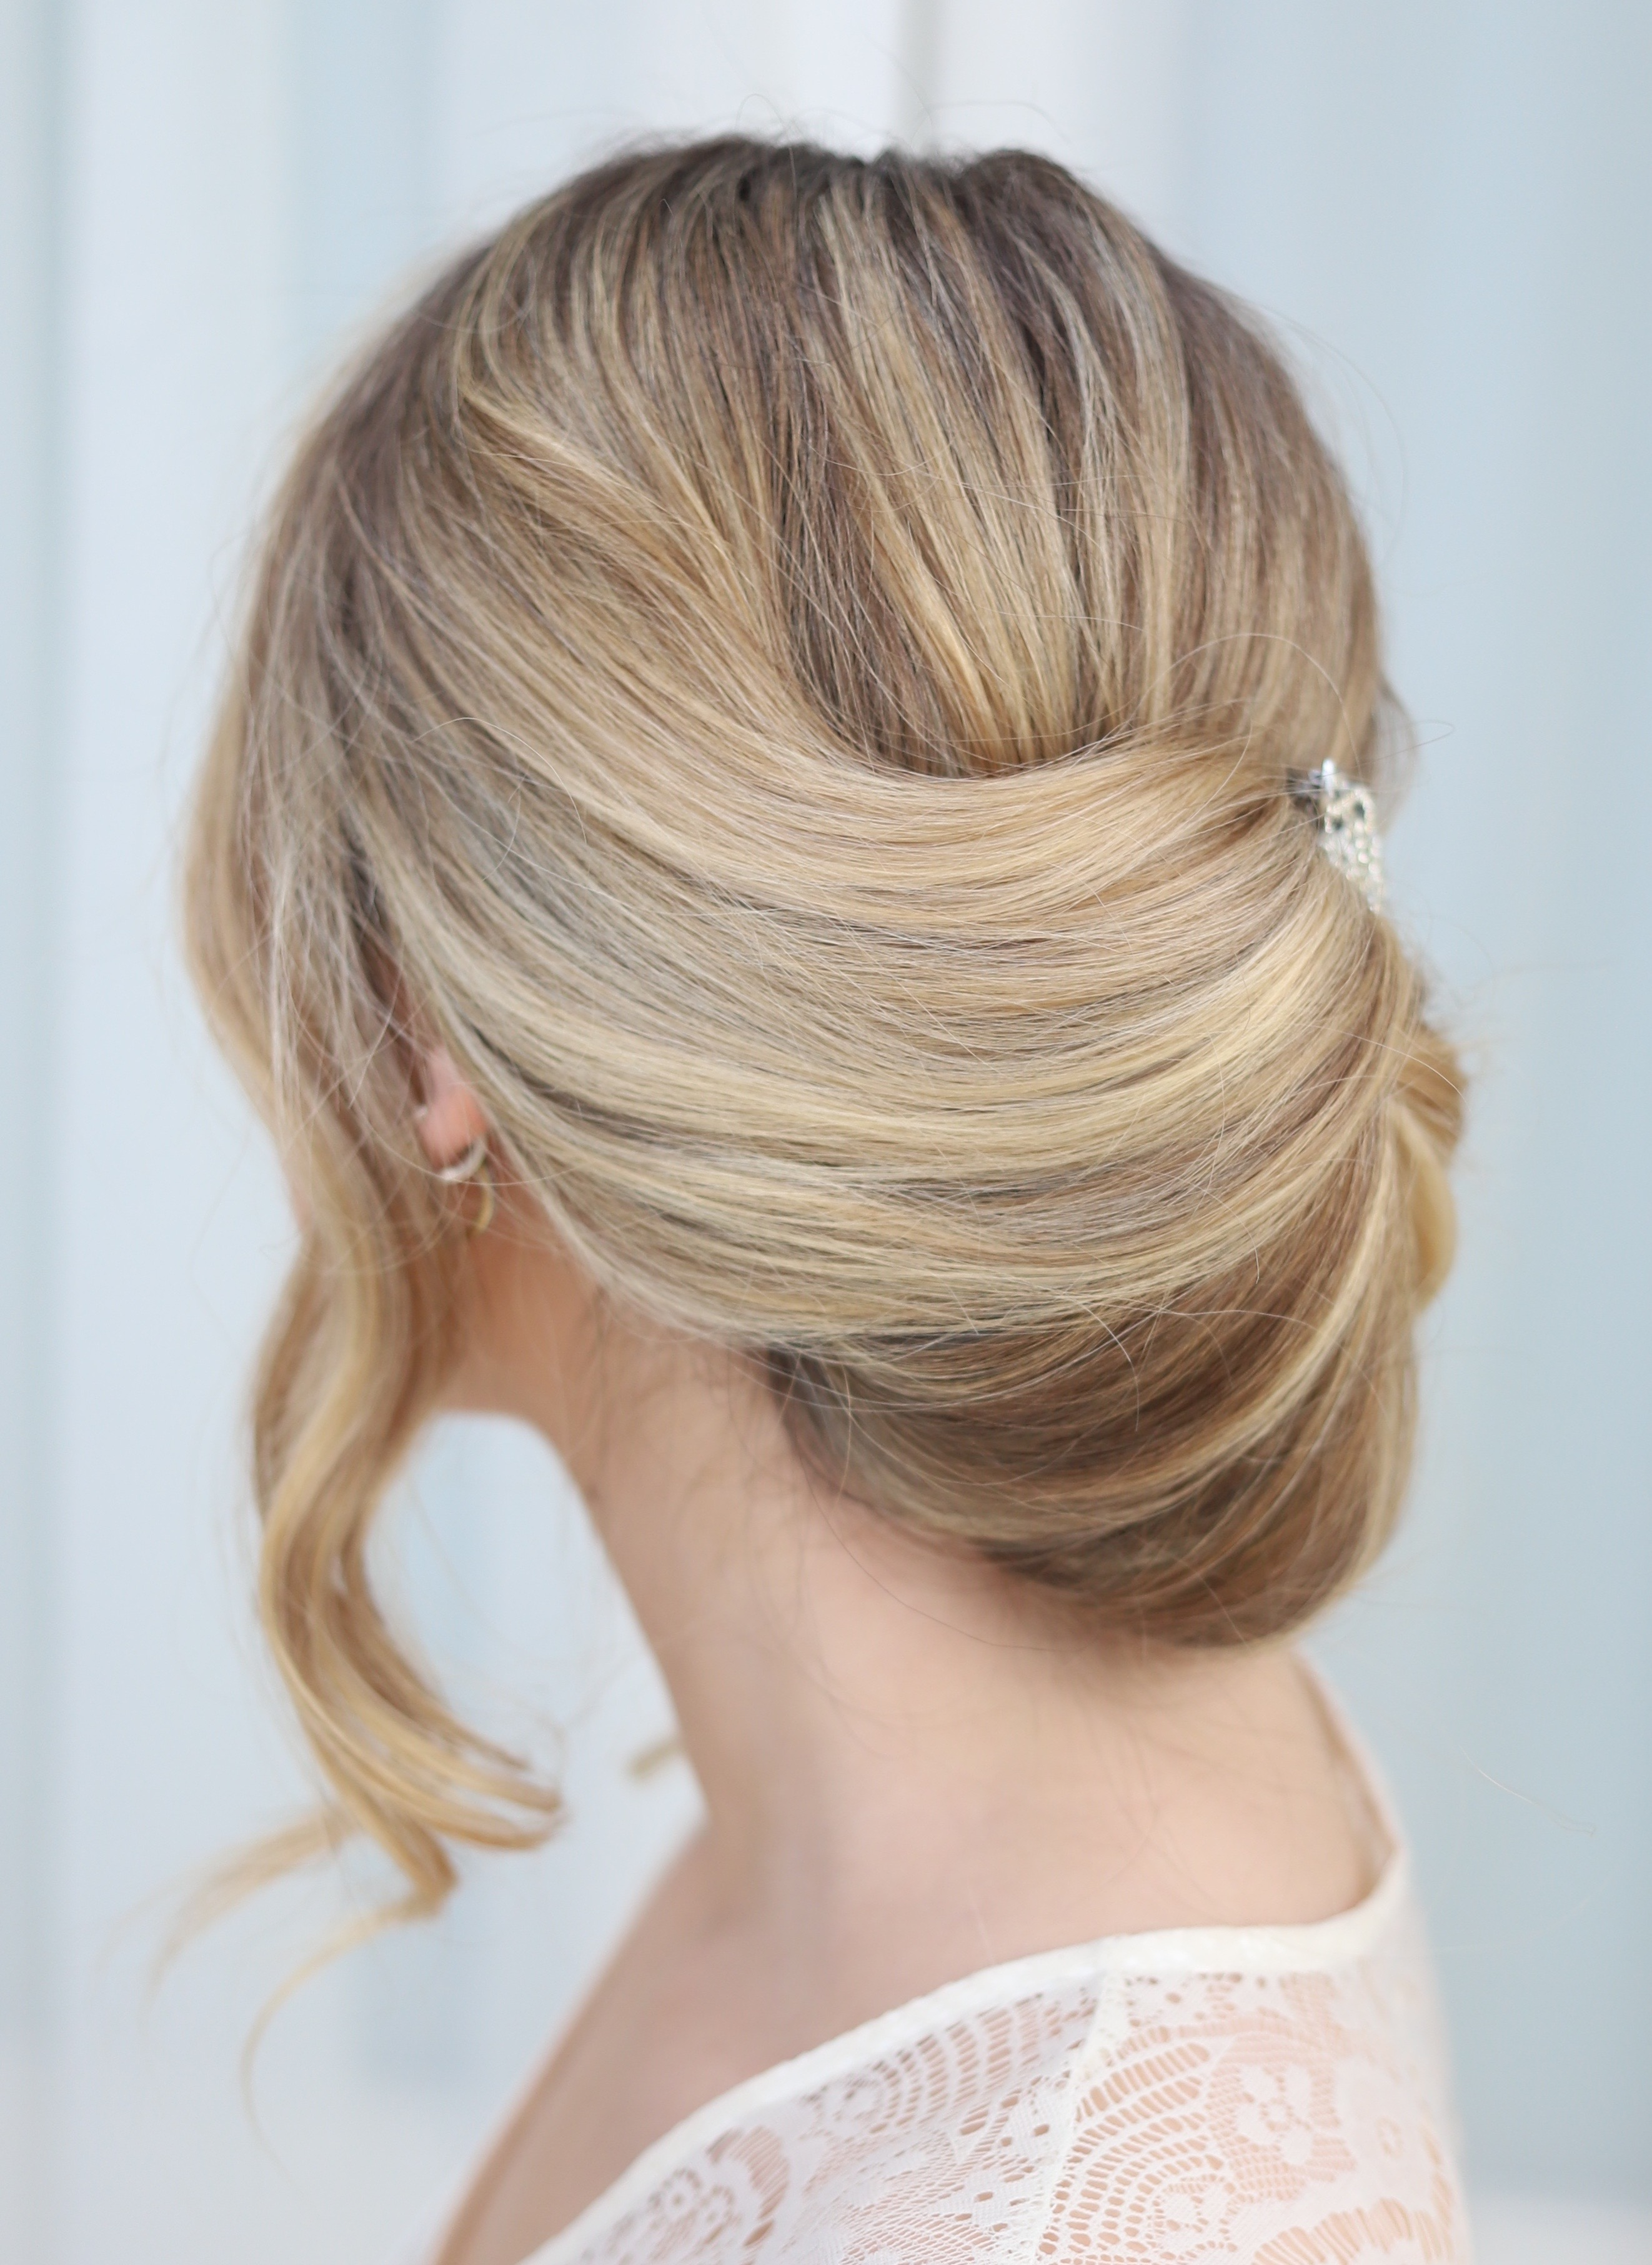 Sleek modern chignon